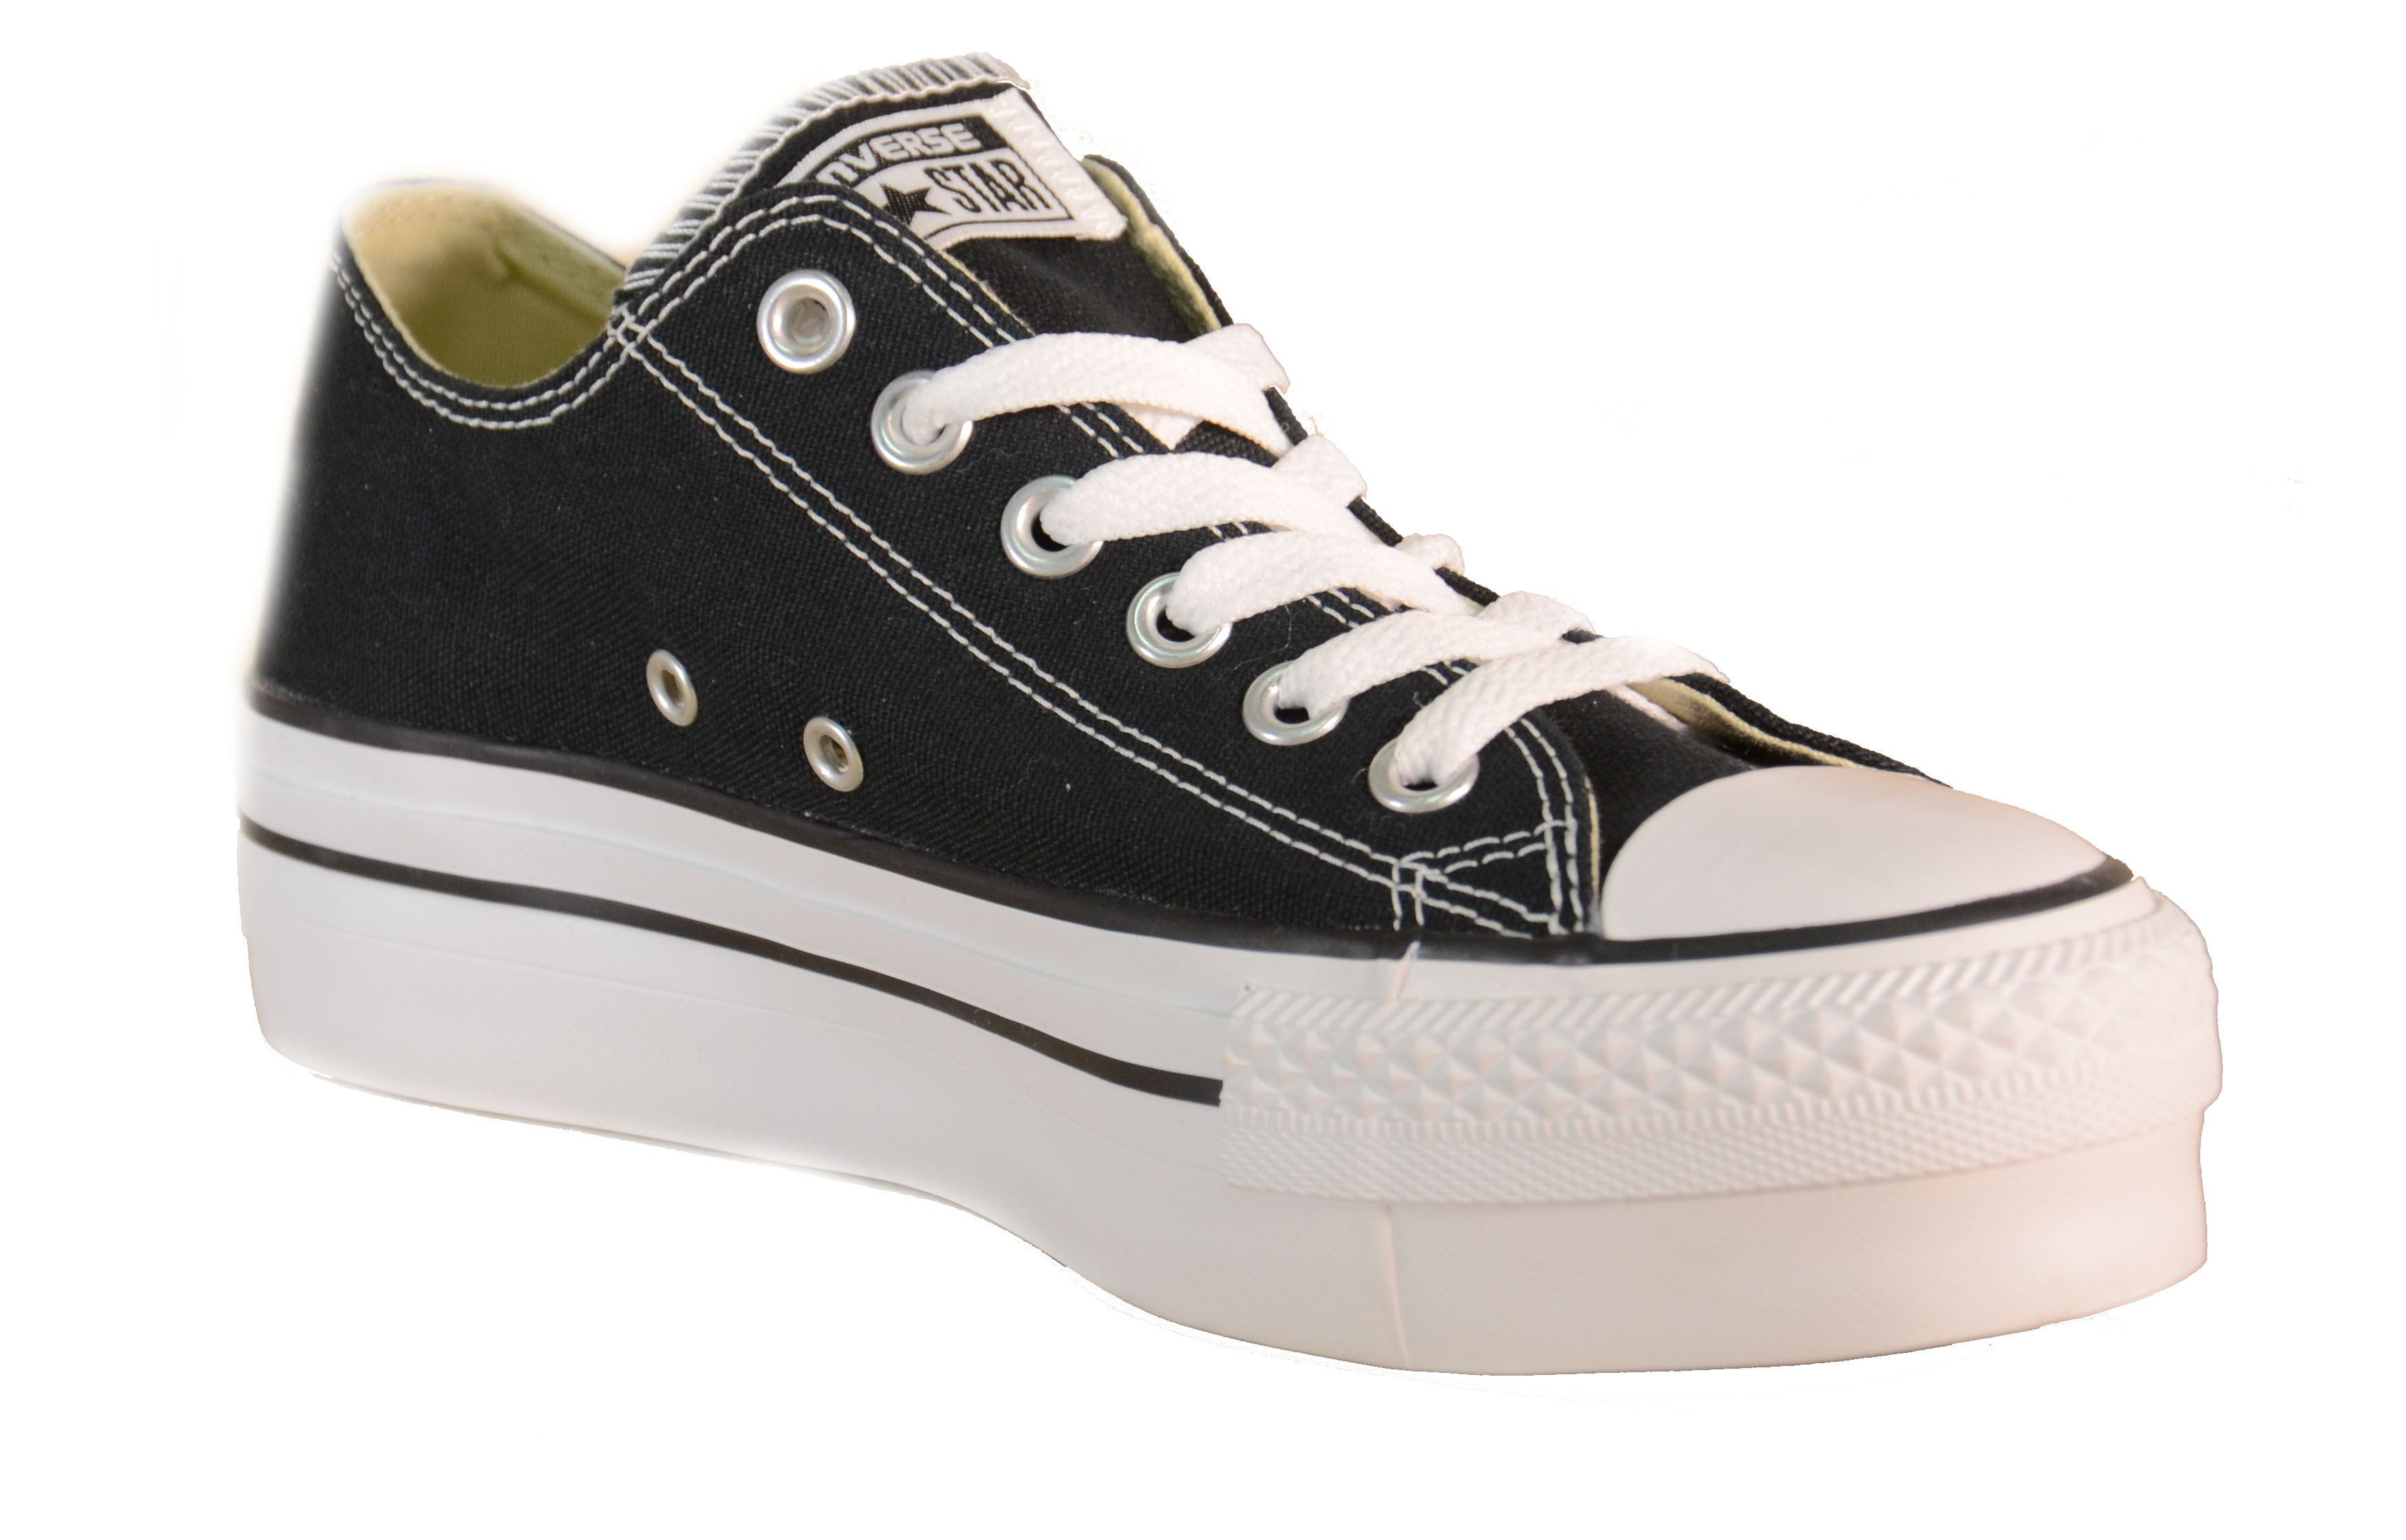 converse all star donna suola alta